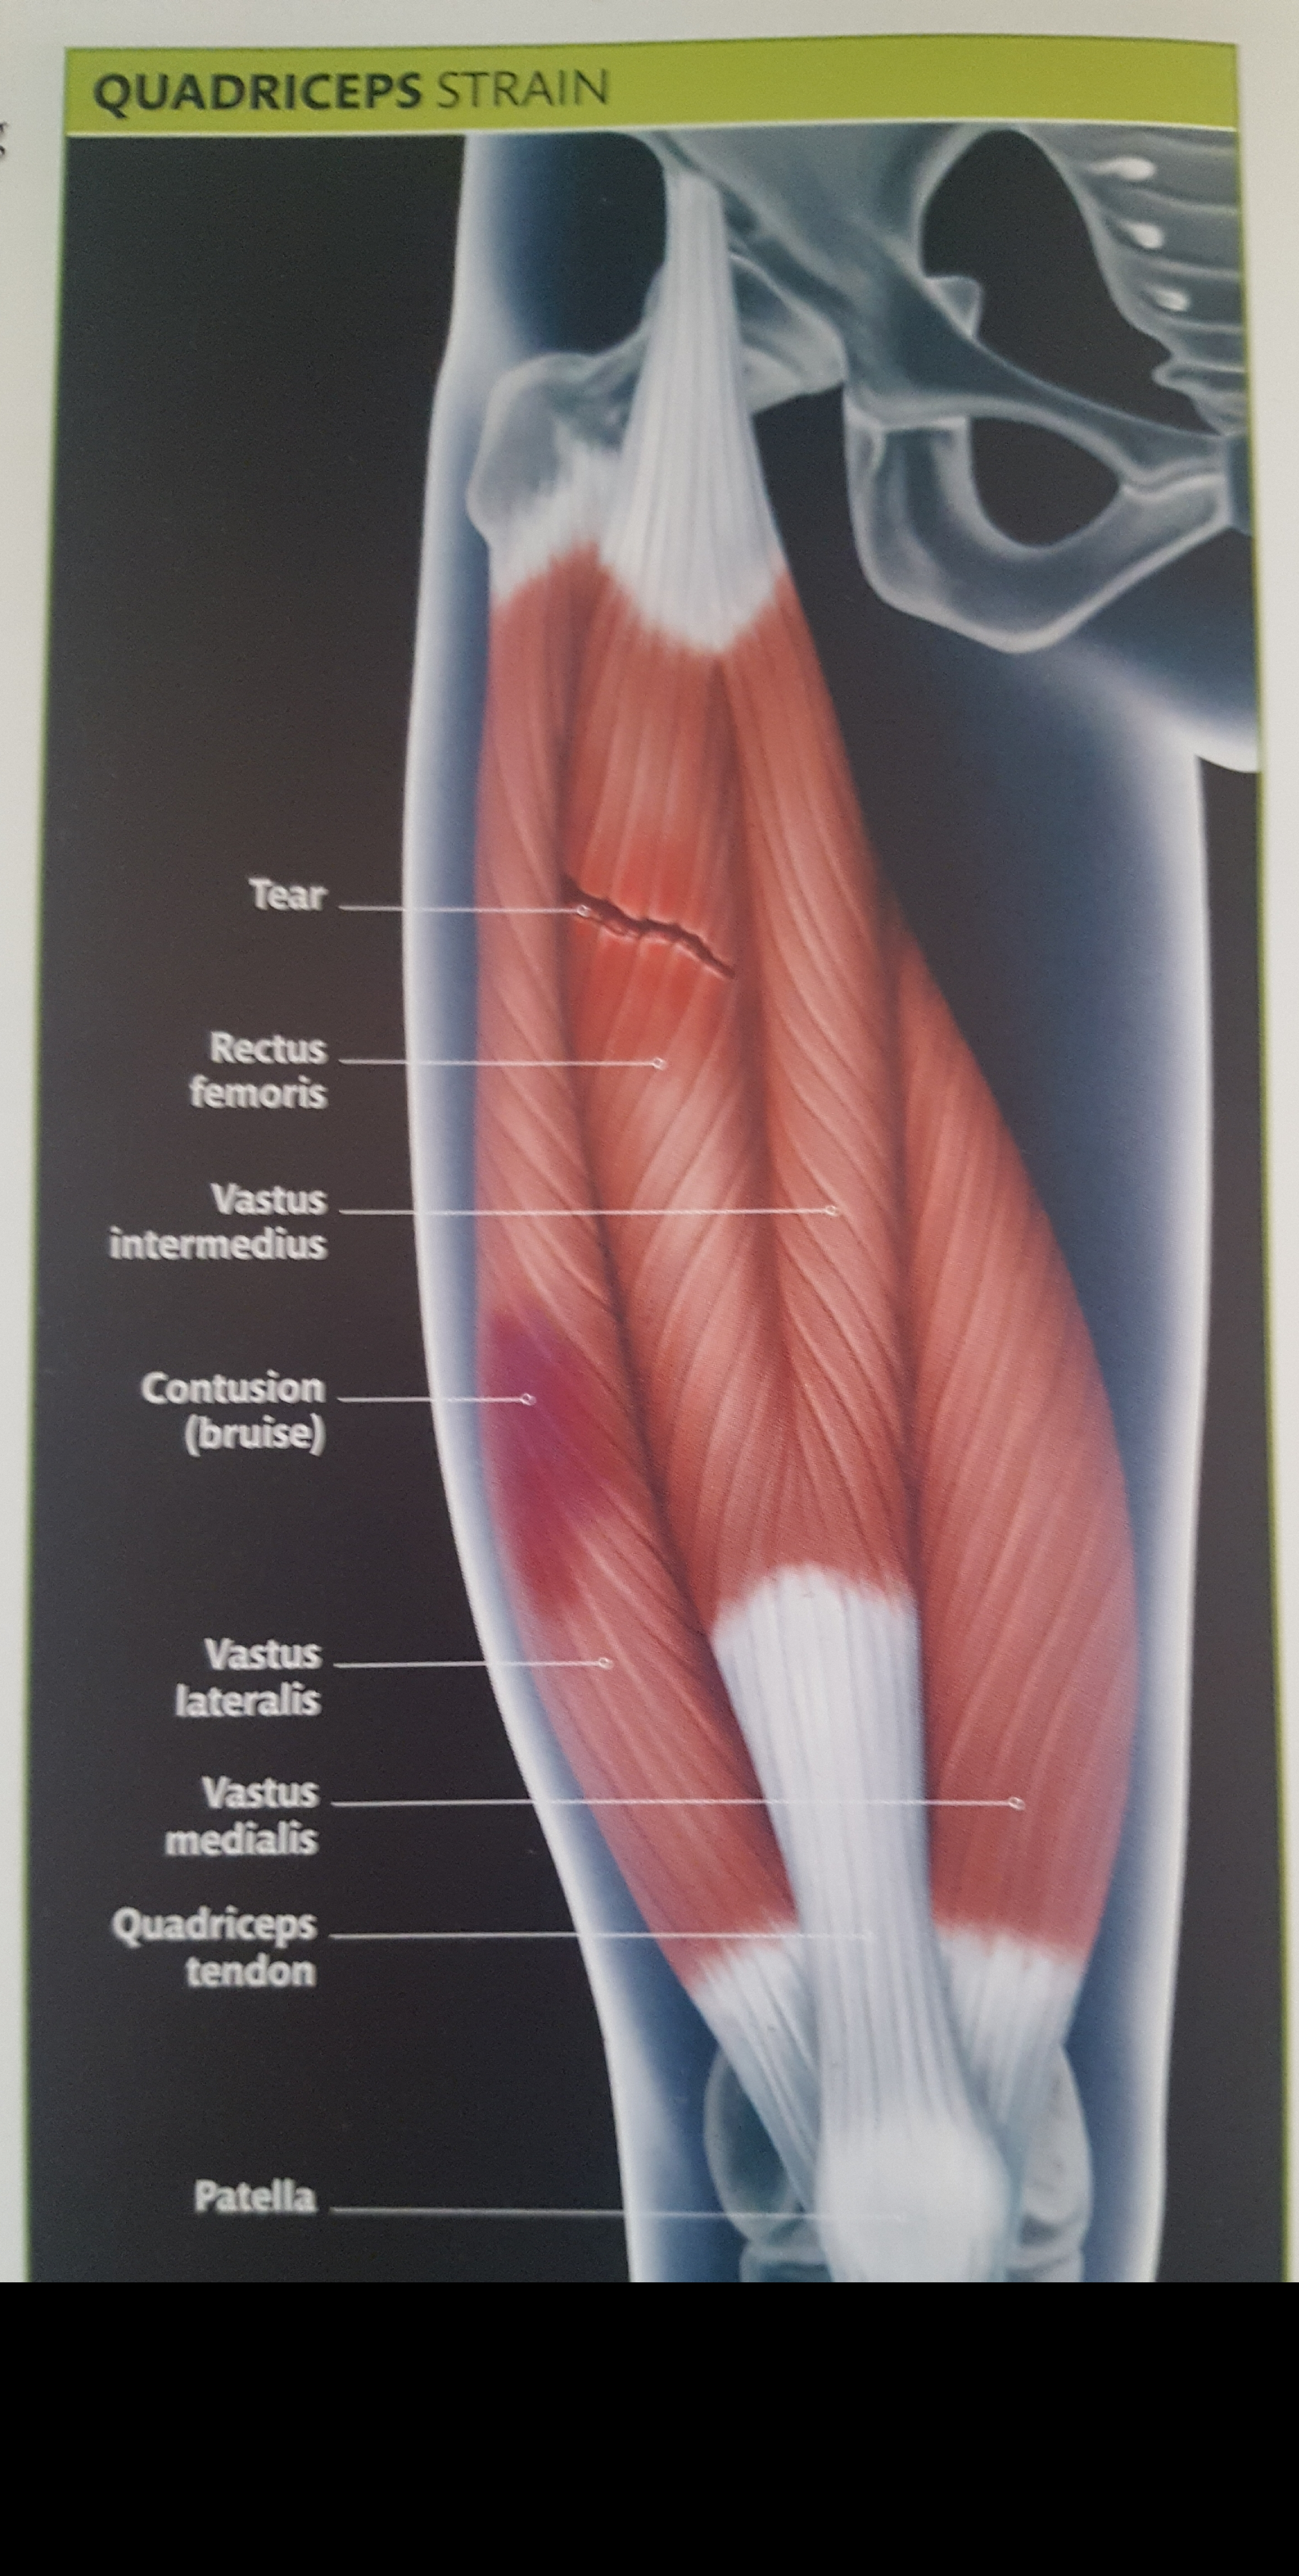 How to Heal Your Quadriceps Strain. - RB Chiropractic